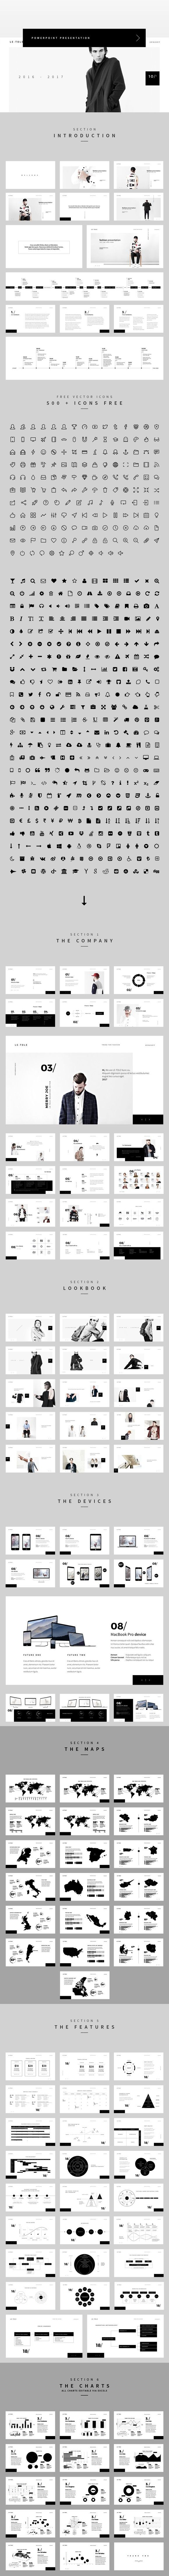 The Fashion PowerPoint. Keynote Templates. $20.00